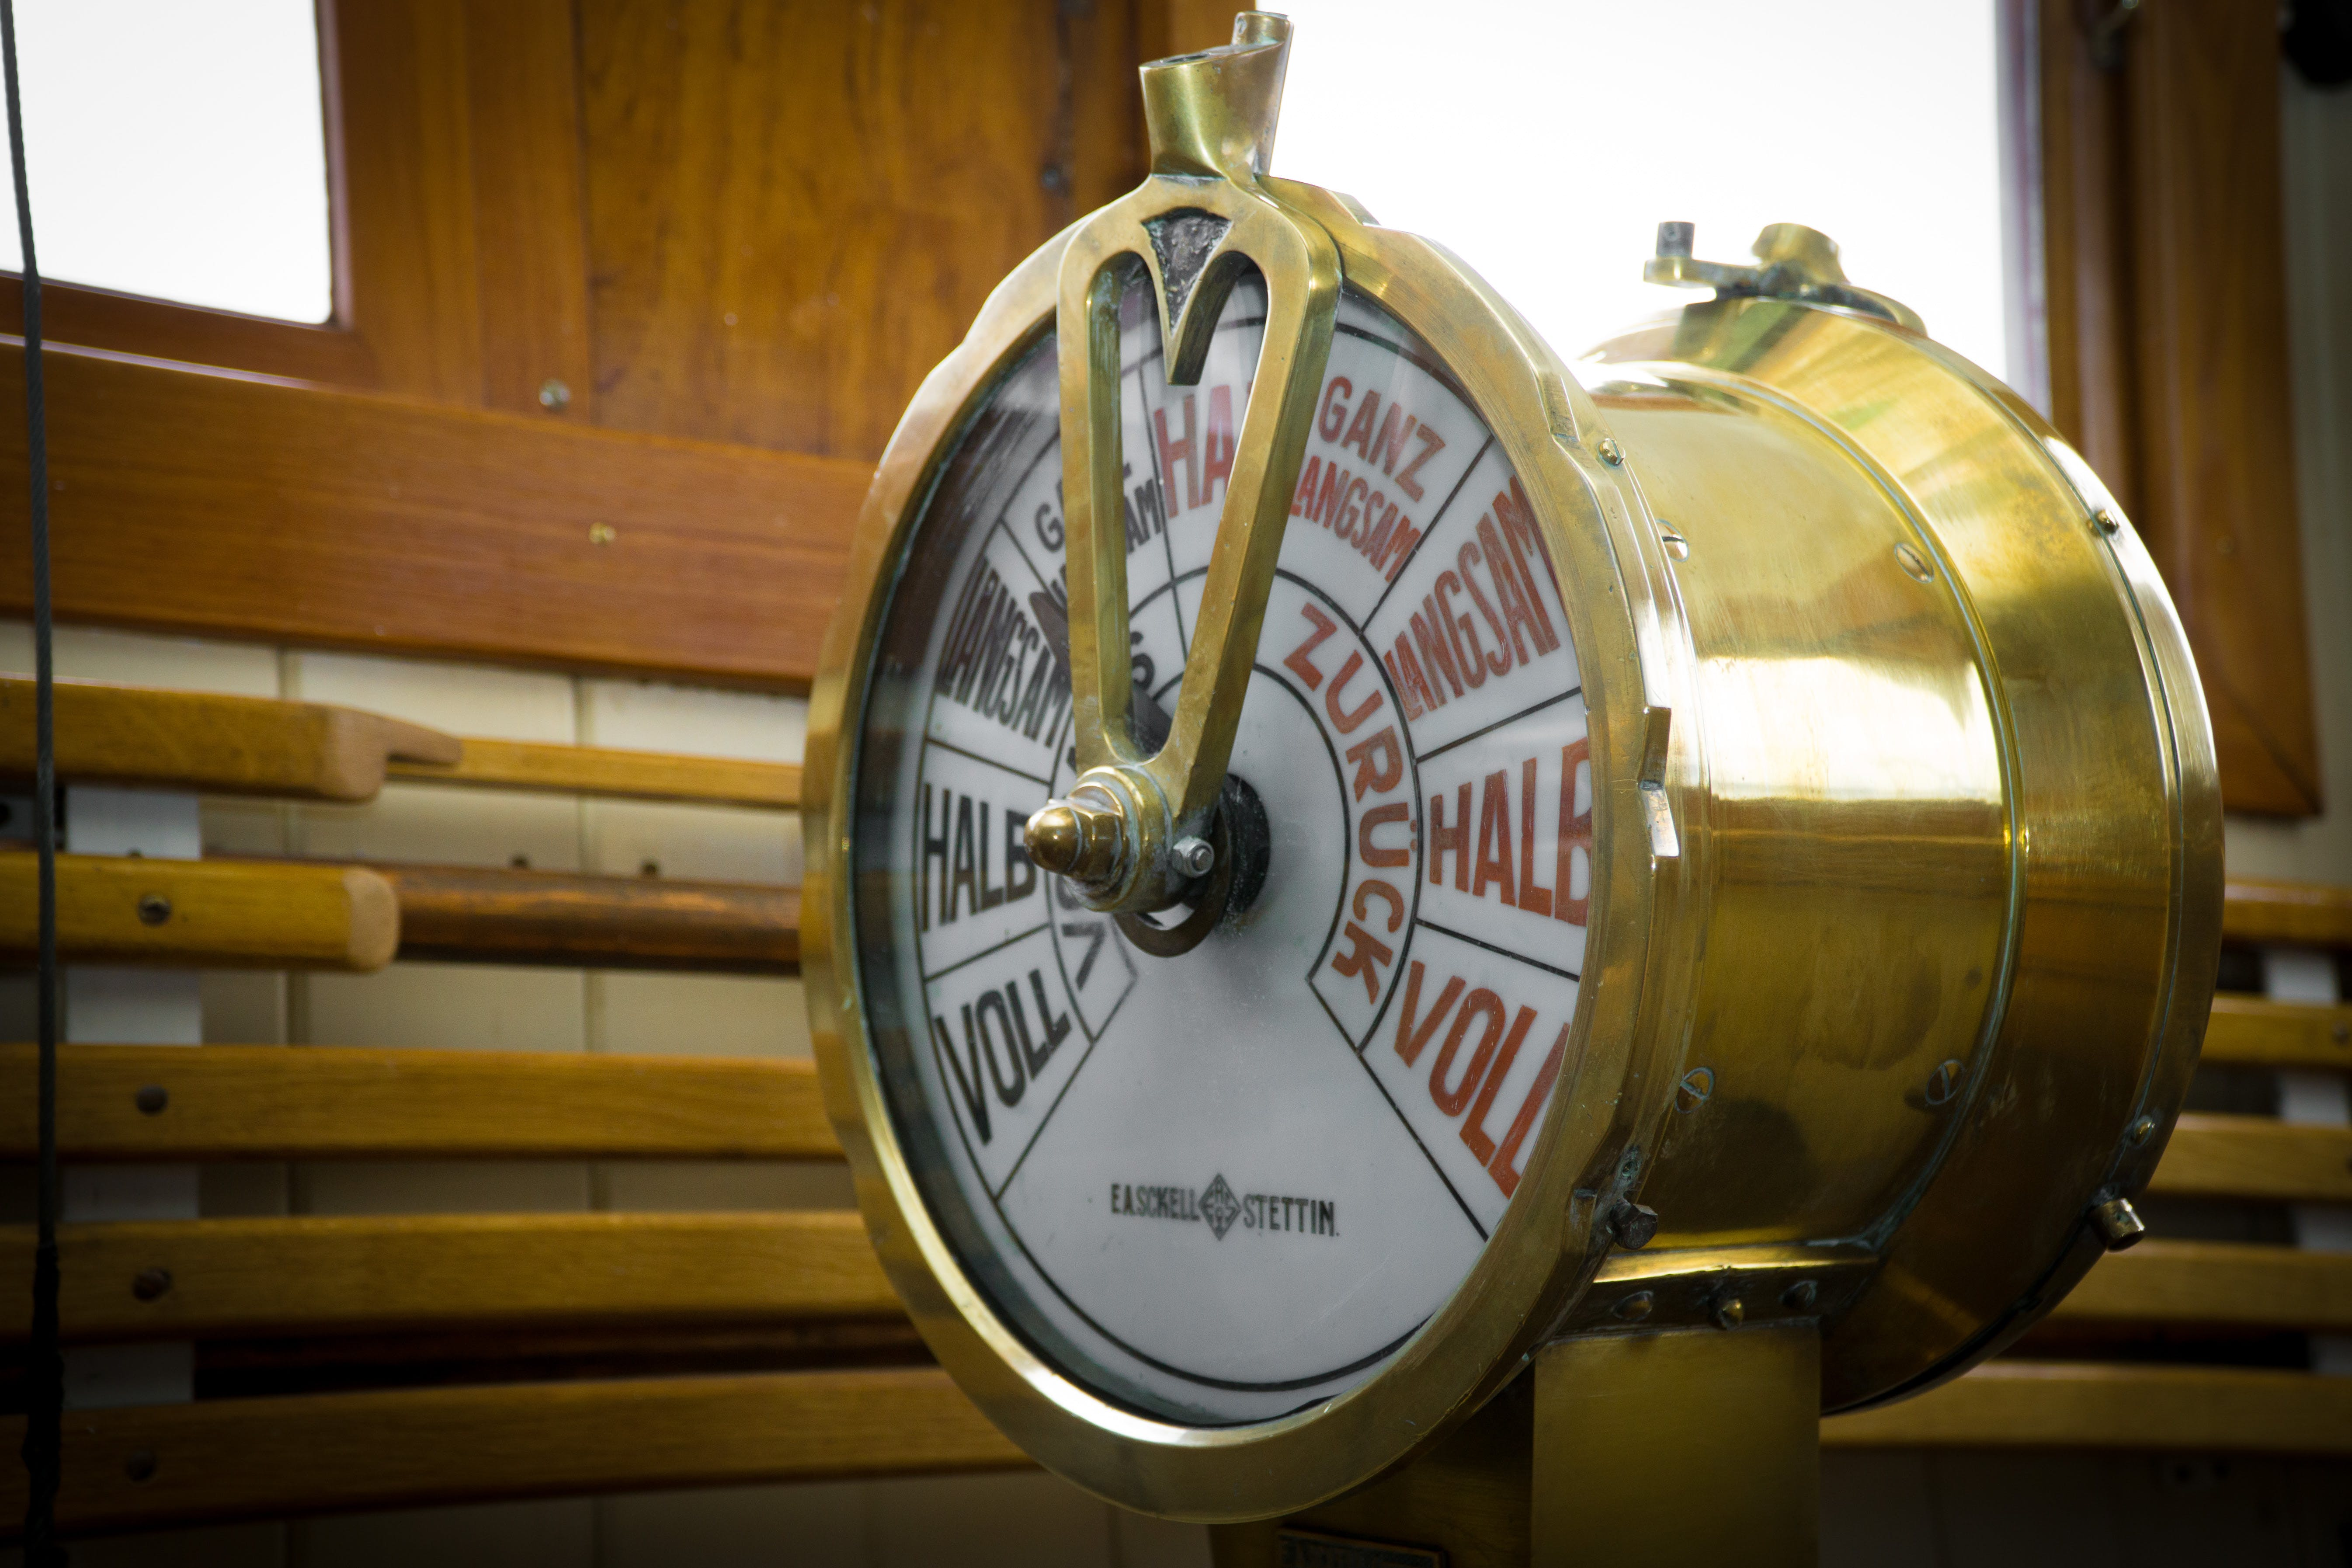 Close-up Photography of Round Brass-colored Ship Throttle Device